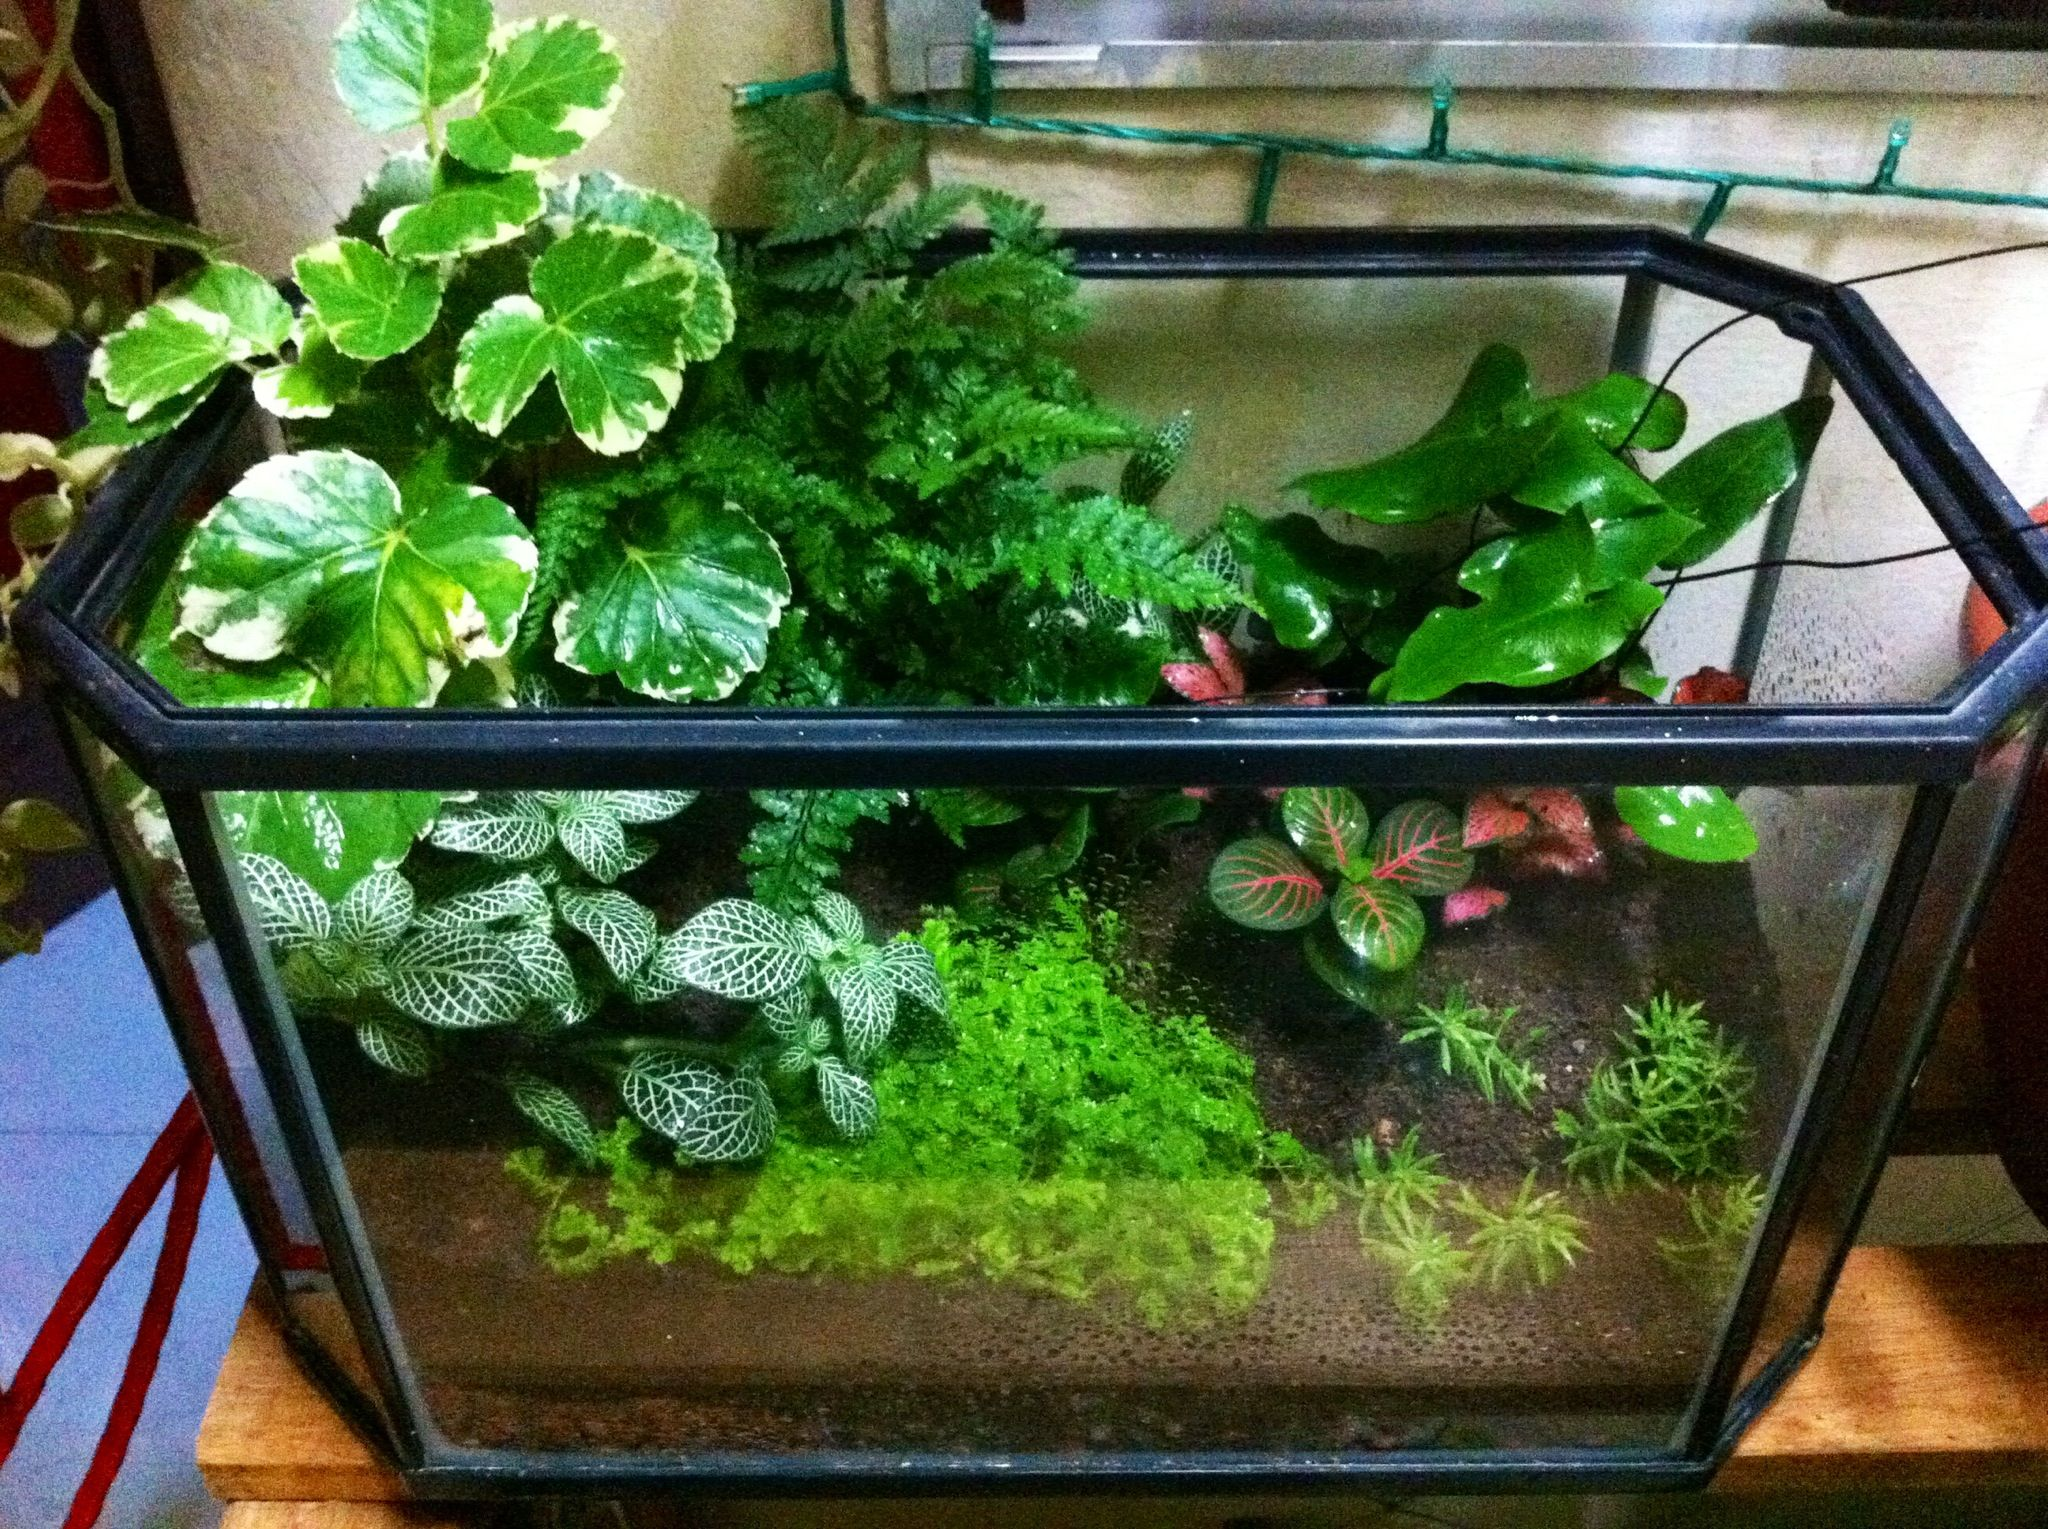 my first terrariums used my old aquarium and placed some